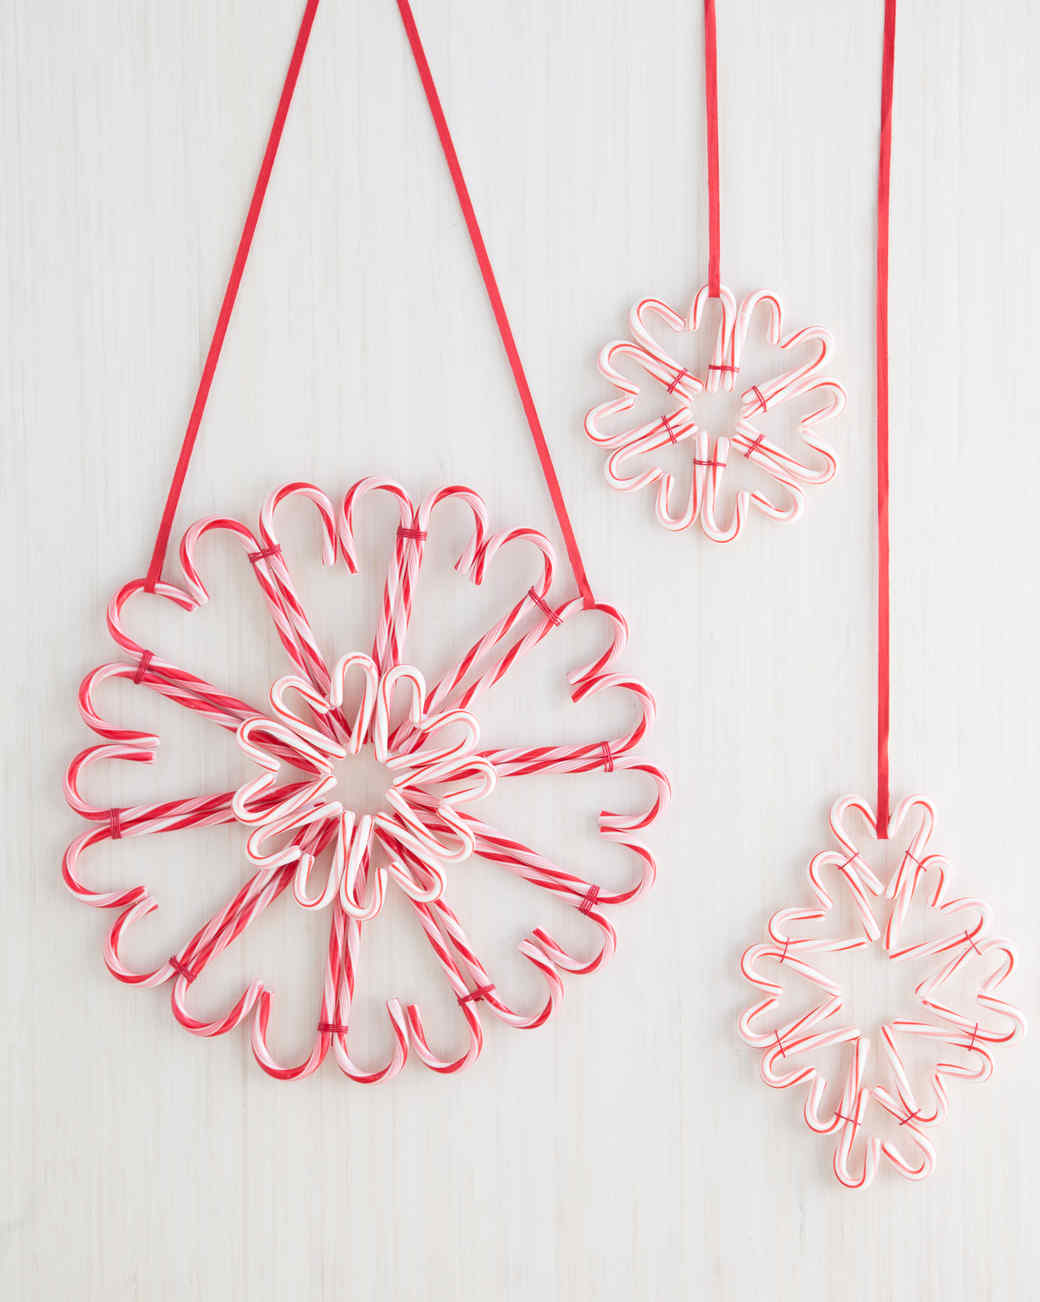 17 Affordable Christmas Crafts for the Whole Family | Martha Stewart